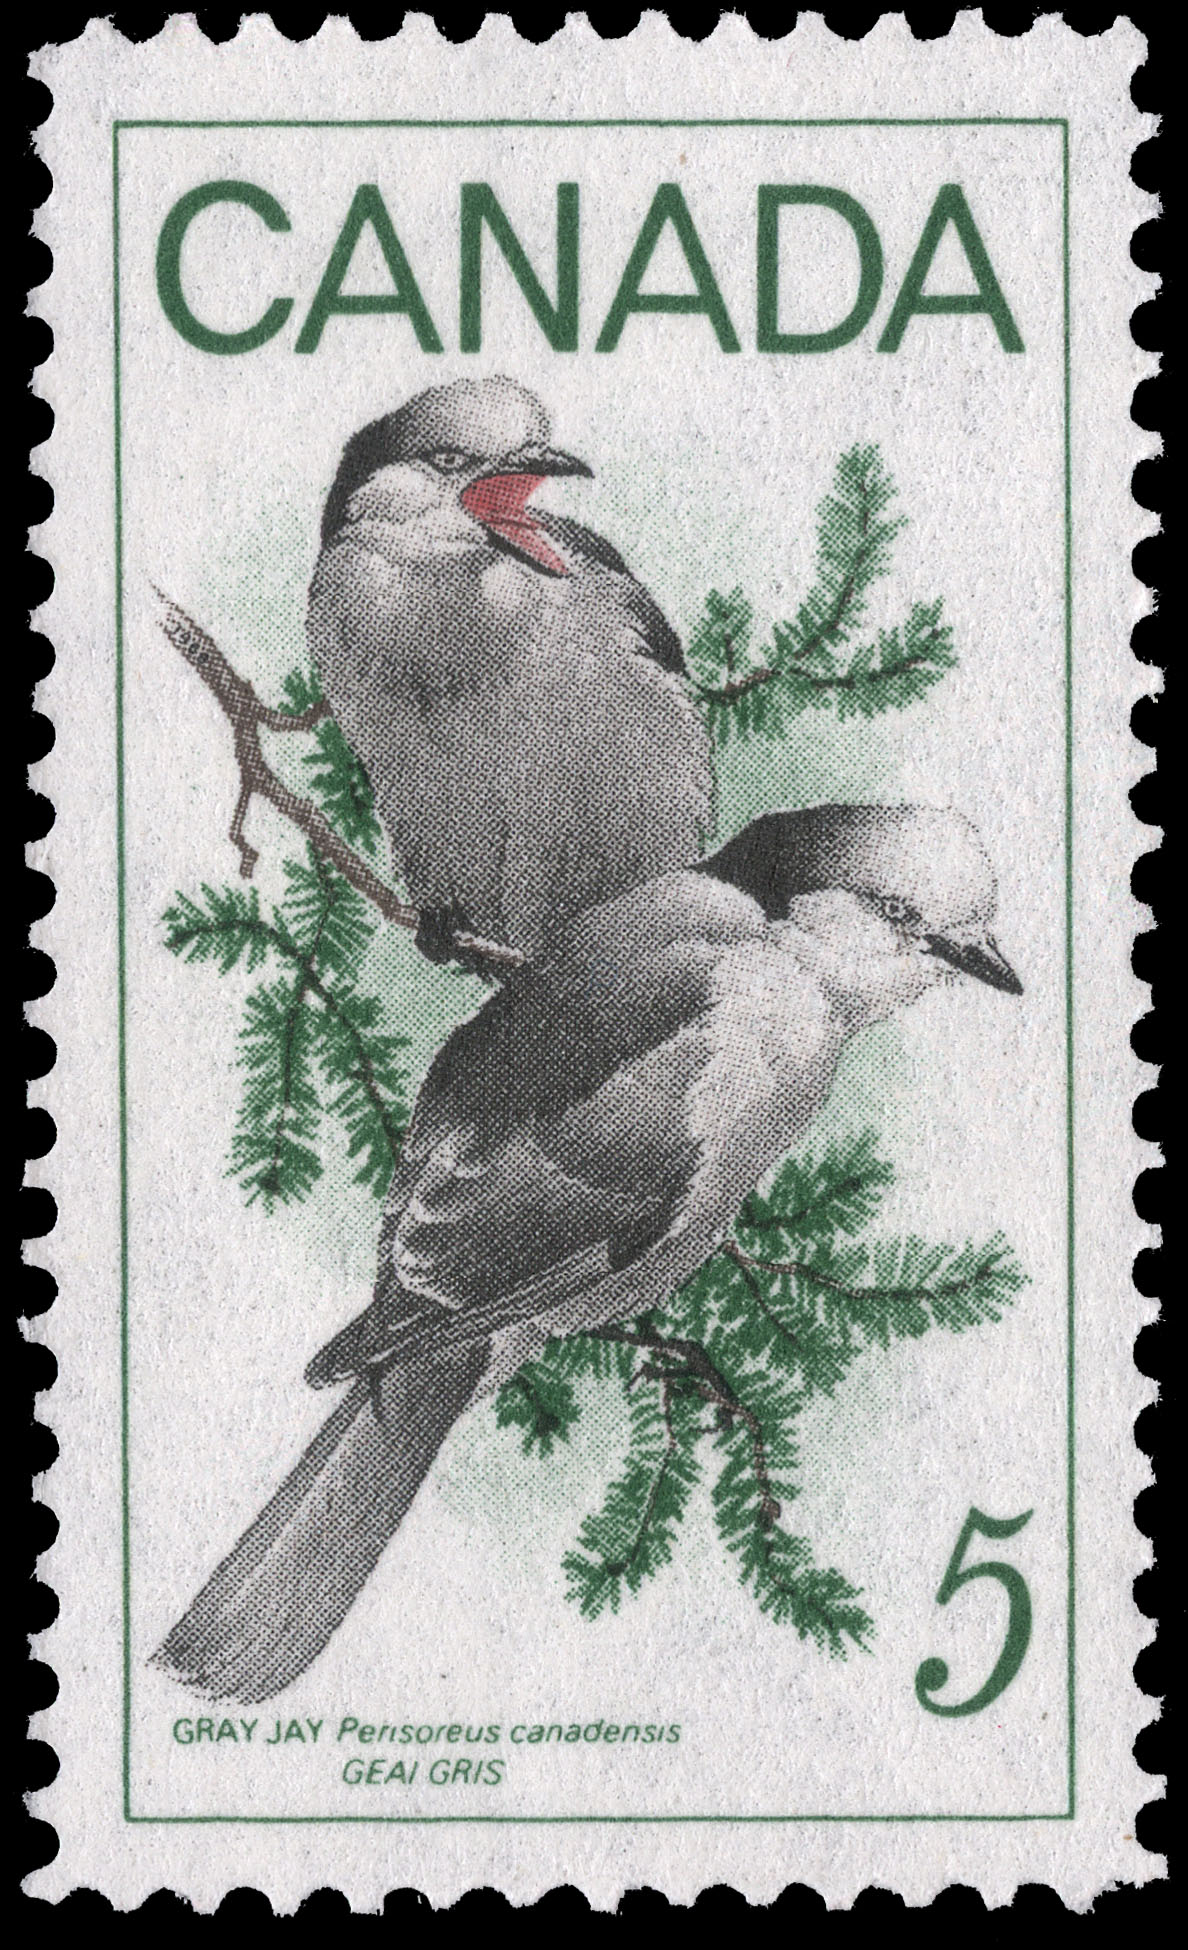 Gray Jay, Perisoreus canadensis Canada Postage Stamp